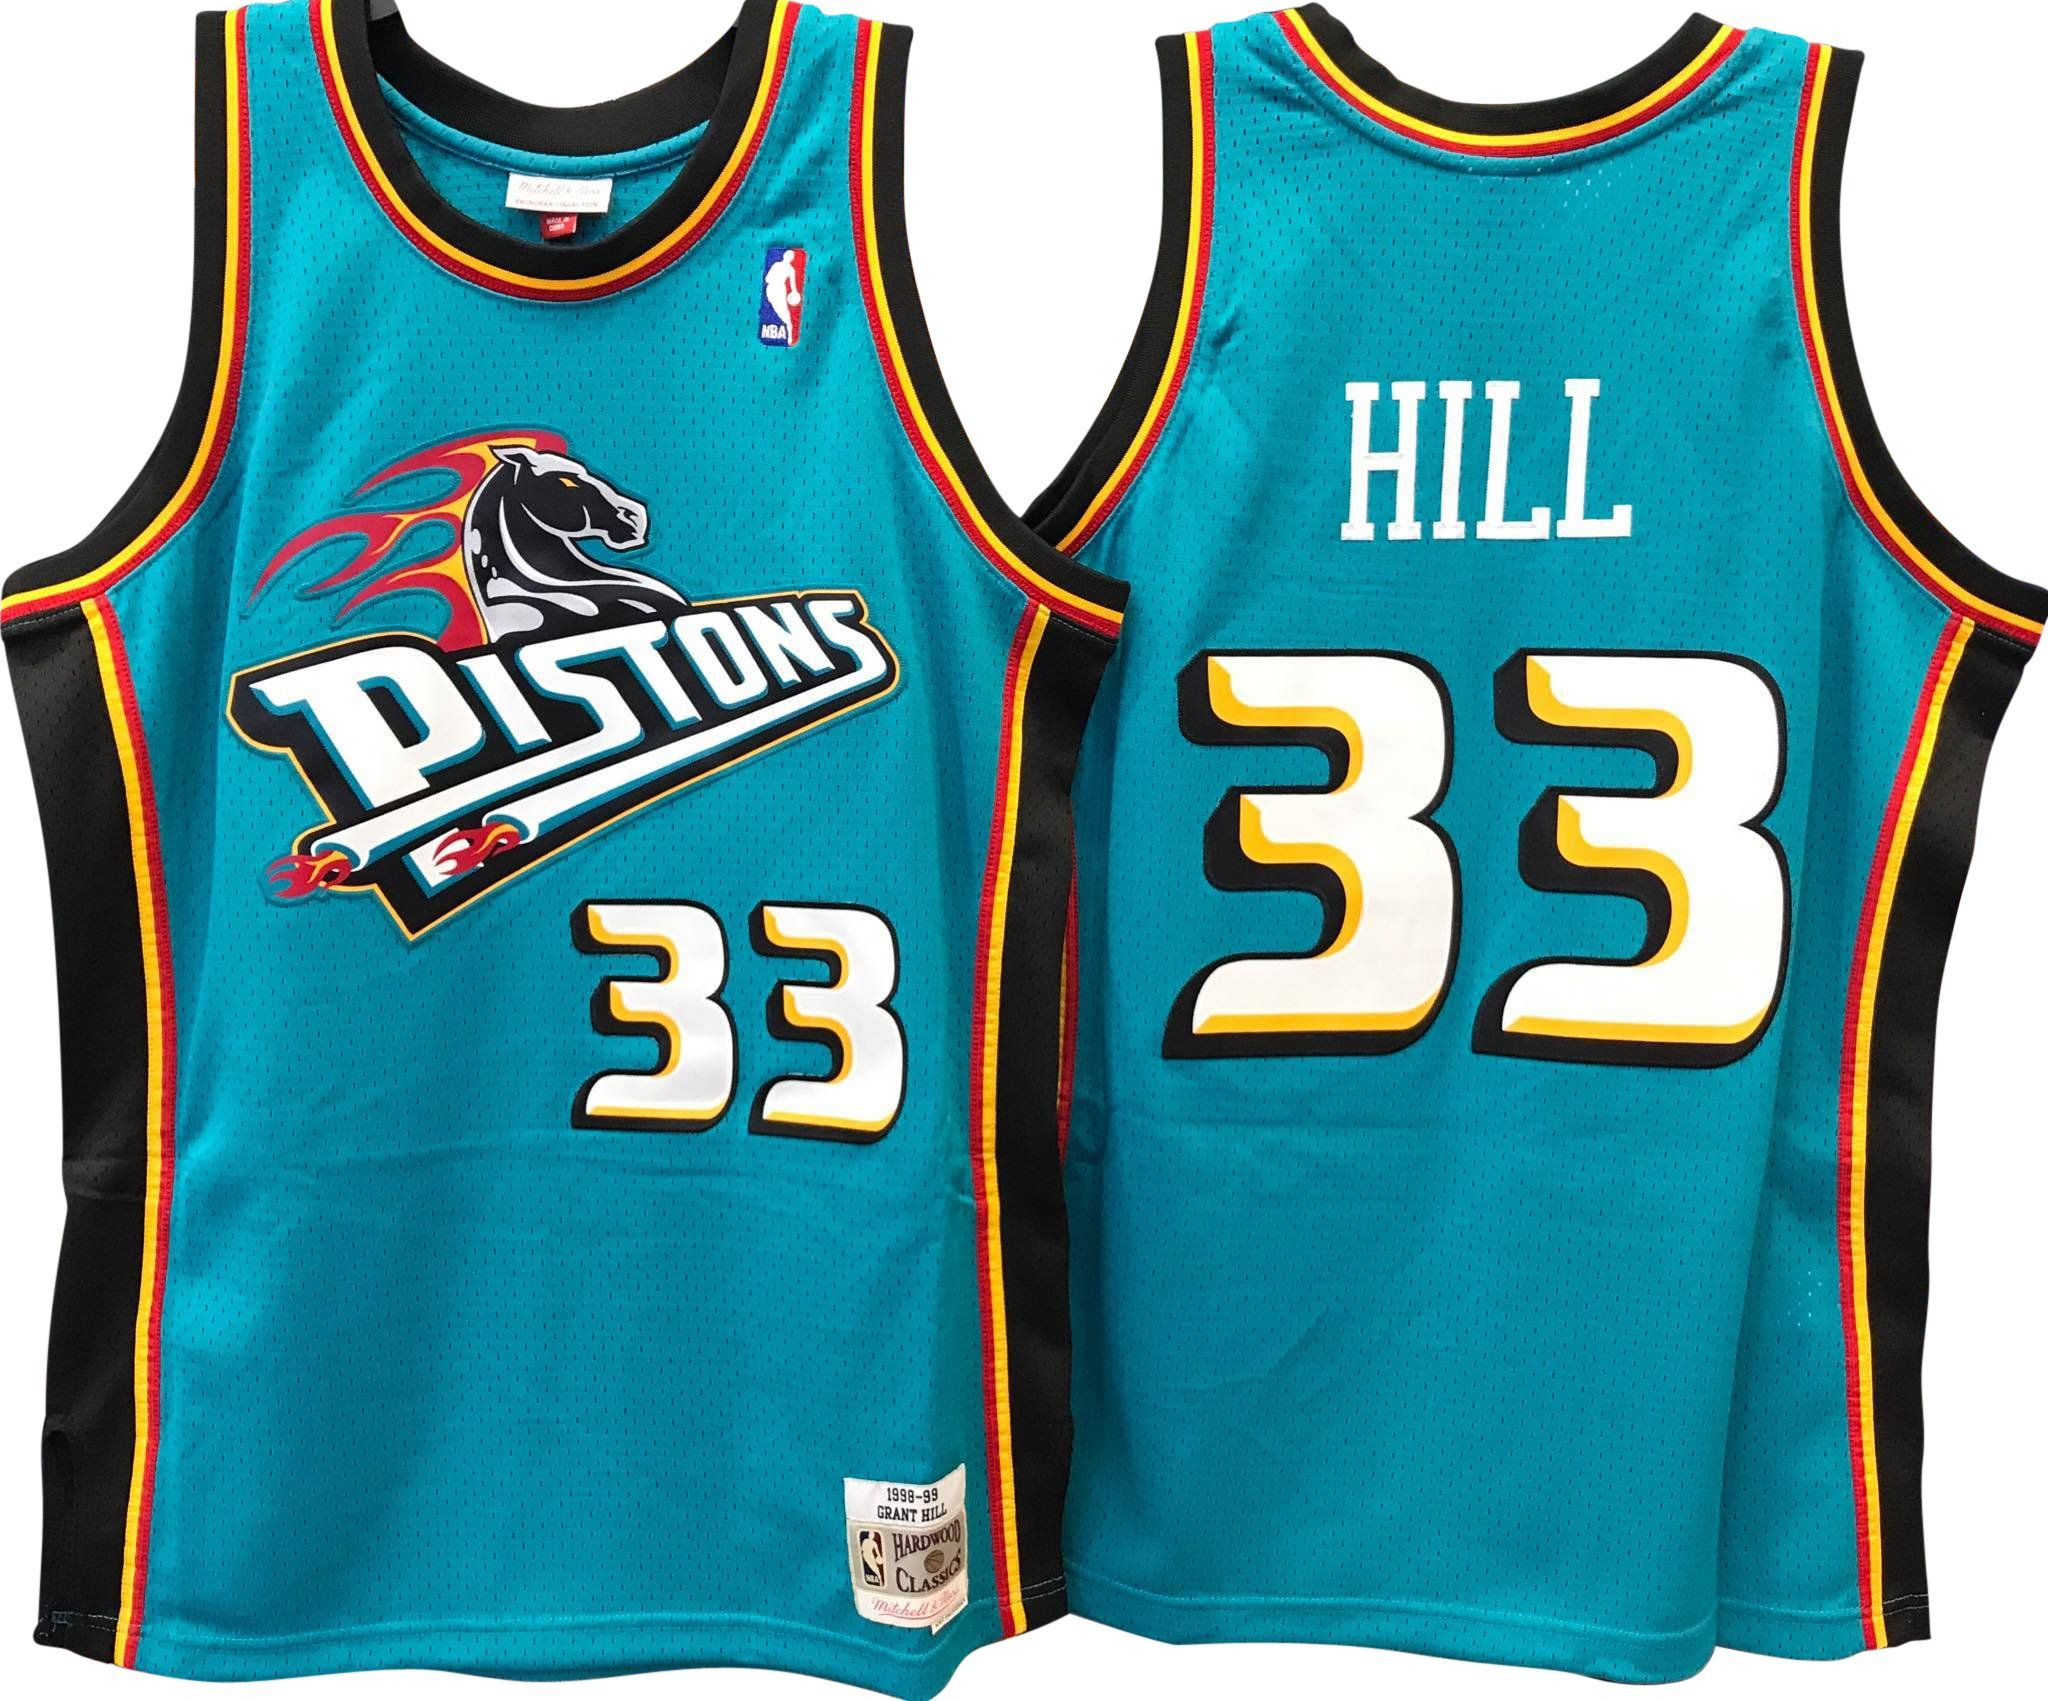 GRANT HILL DETROIT PISTONS NBA HARDWOOD CLASSICS THROWBACK SWINGMAN JERSEY efdcb923d